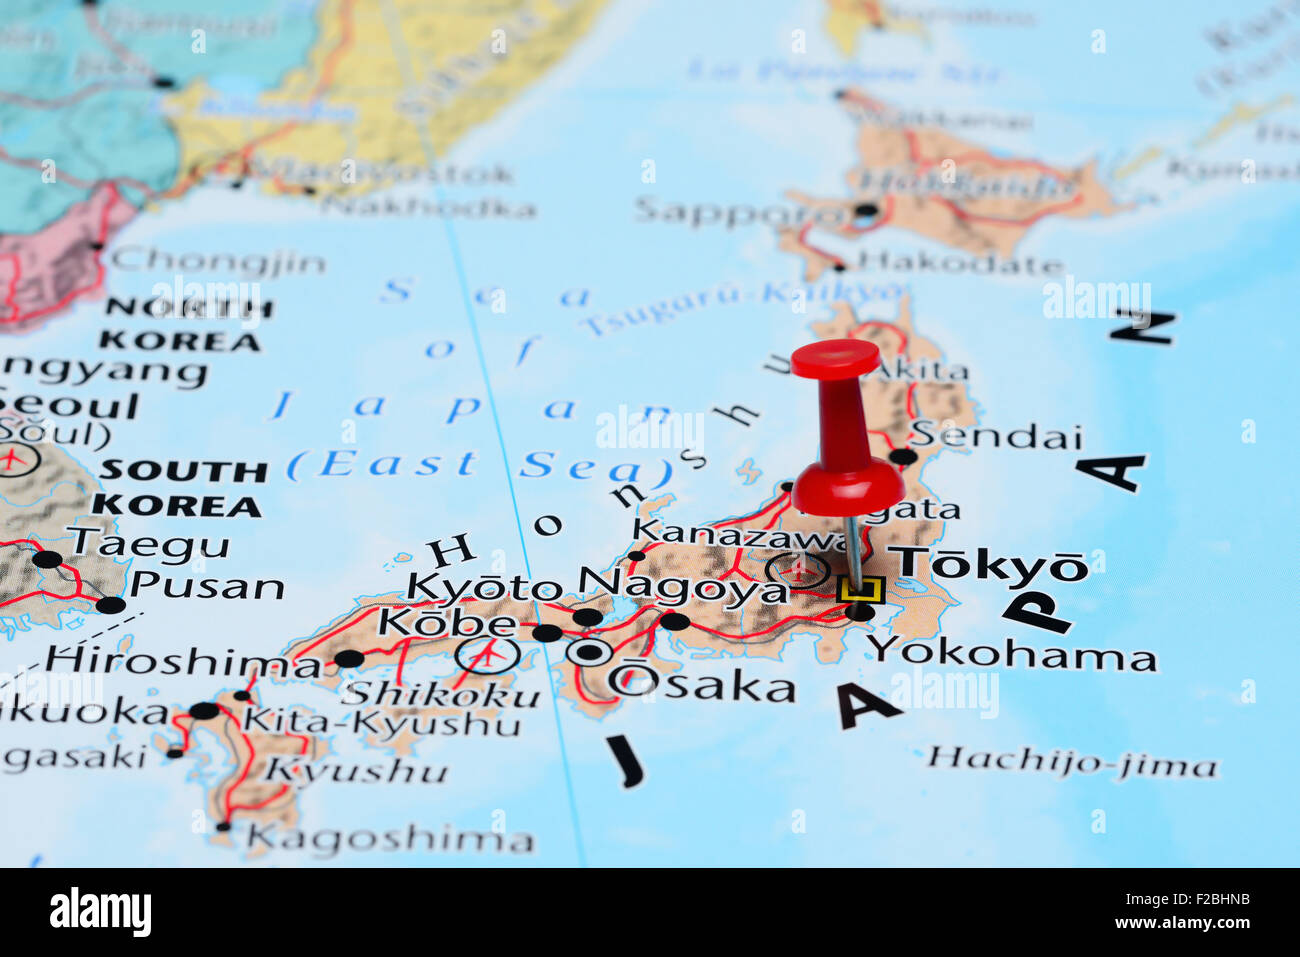 Tokyo On A Map Tokyo pinned on a map of Asia Stock Photo: 87536551   Alamy